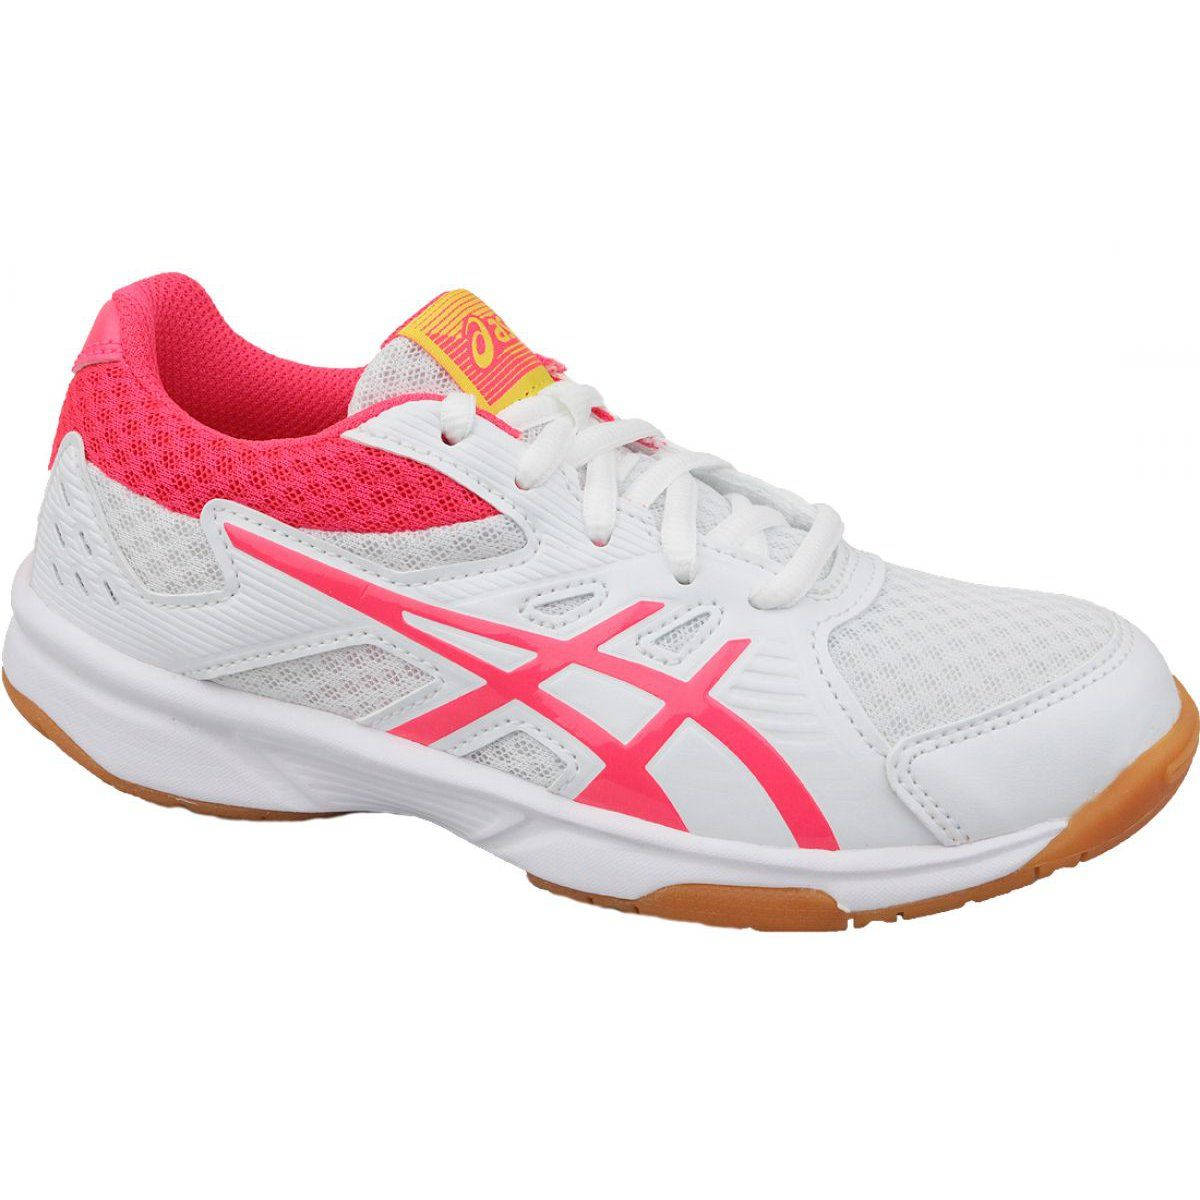 Volleyball Shoes Asics Upcourt 3 Gs Jr 1074a005 104 White White Volleyball Shoes Asics Volleyball